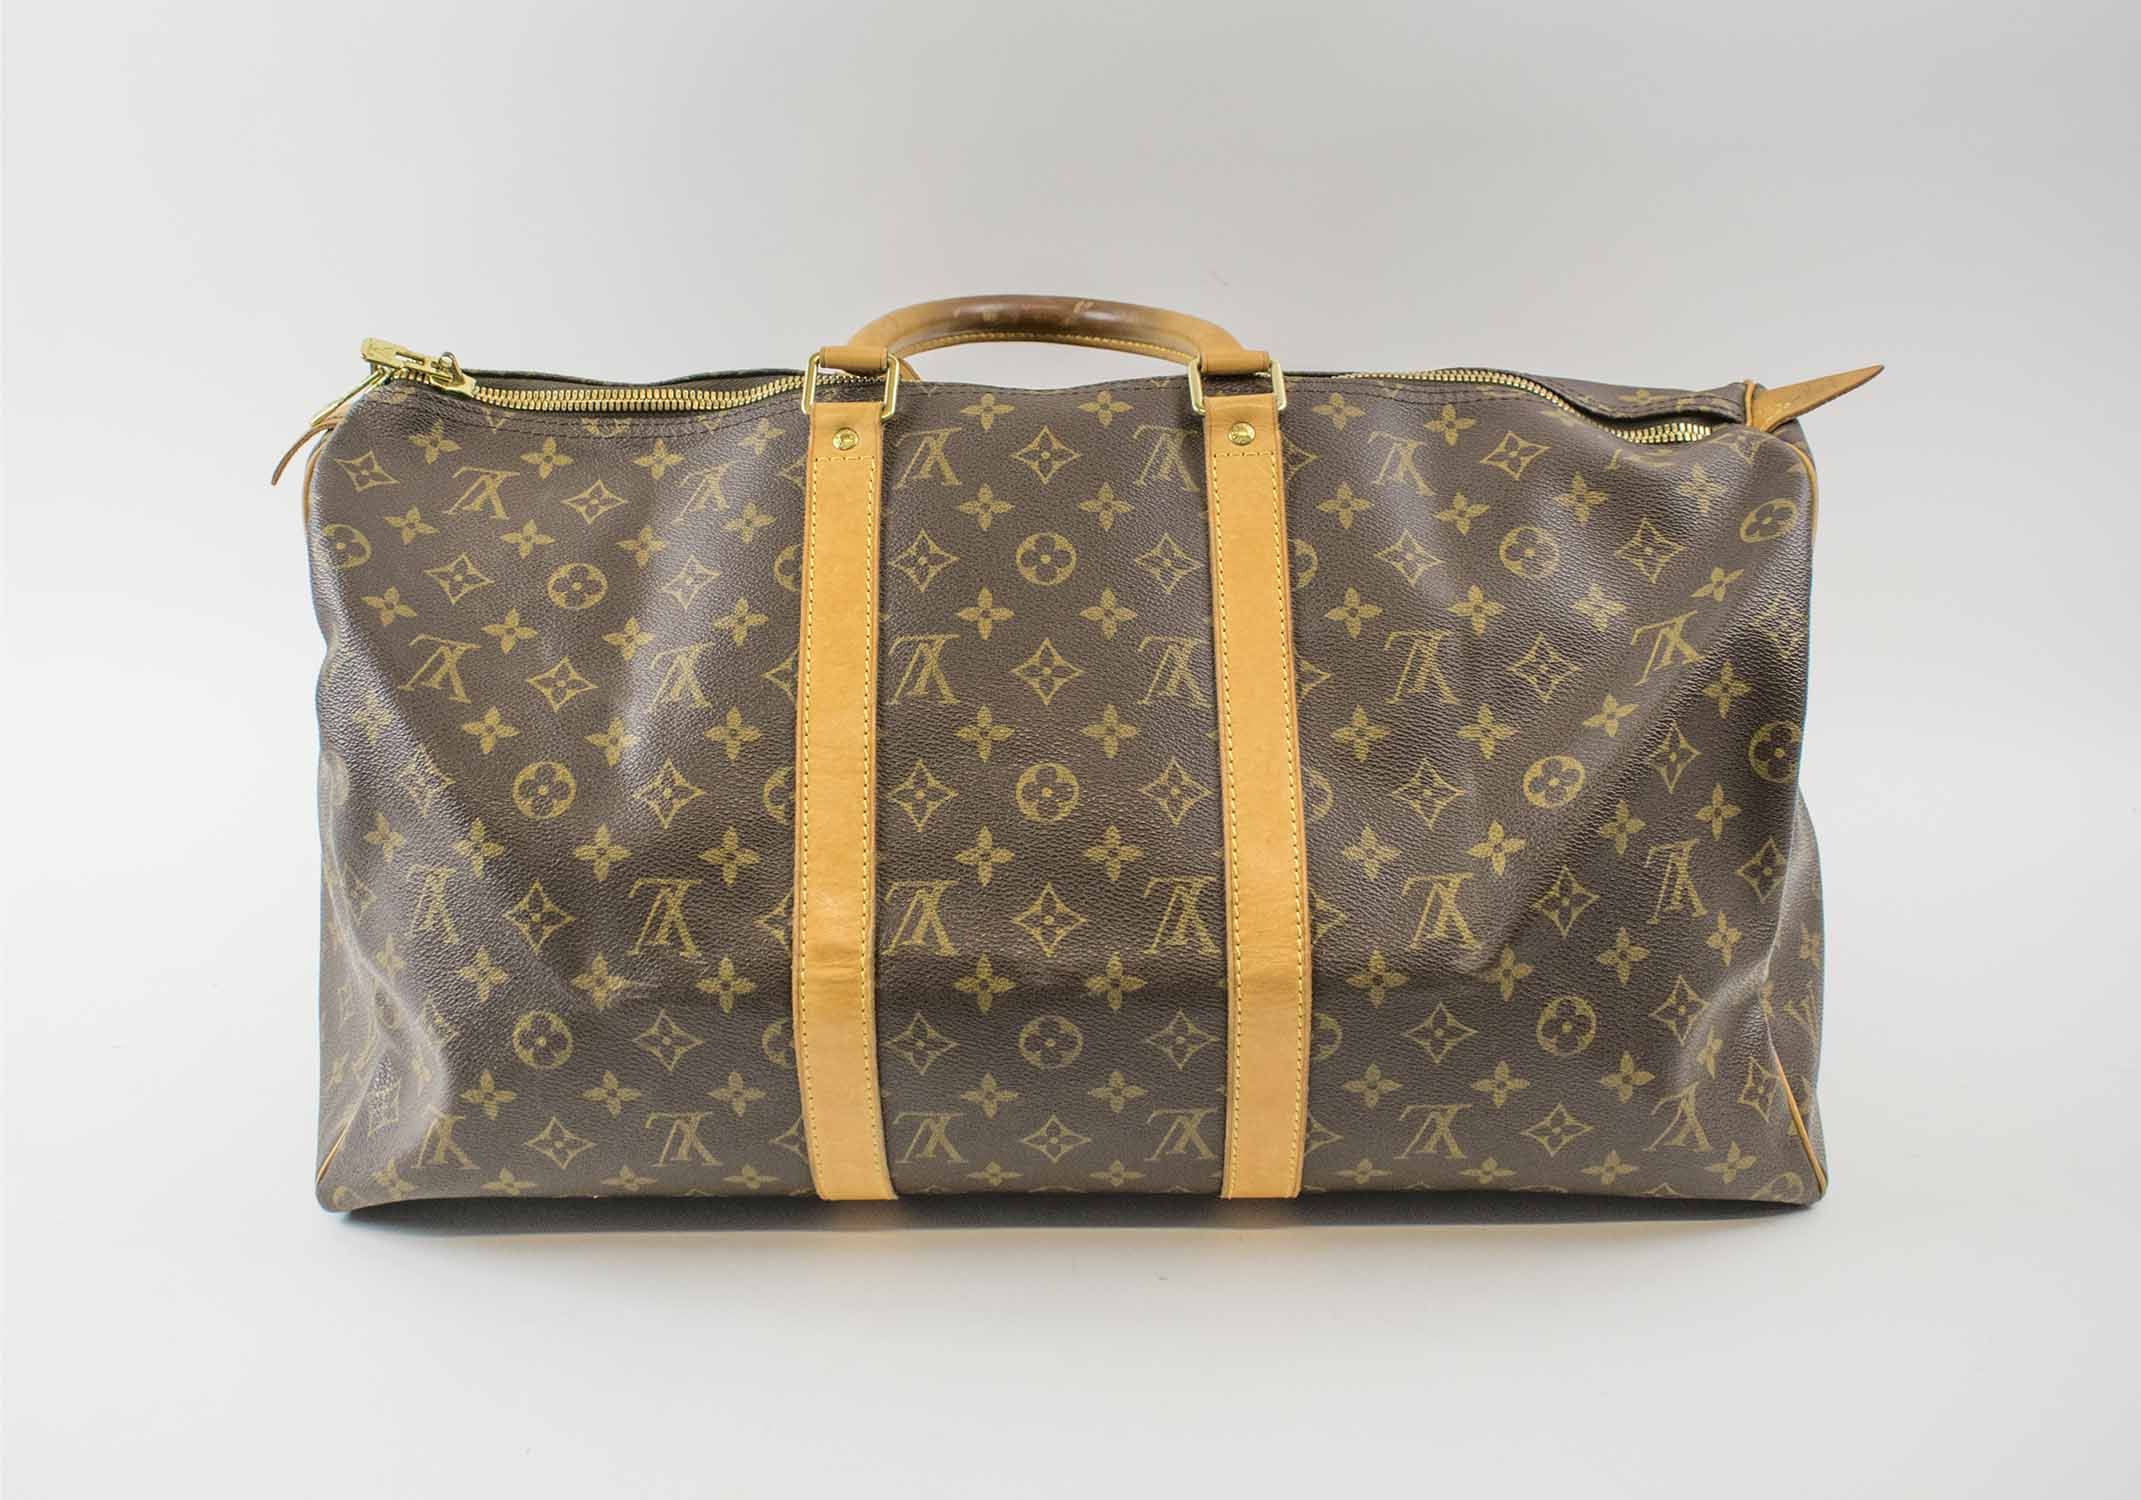 f7073d3947e LOUIS VUITTON KEEPALL 50 TRAVEL BAG